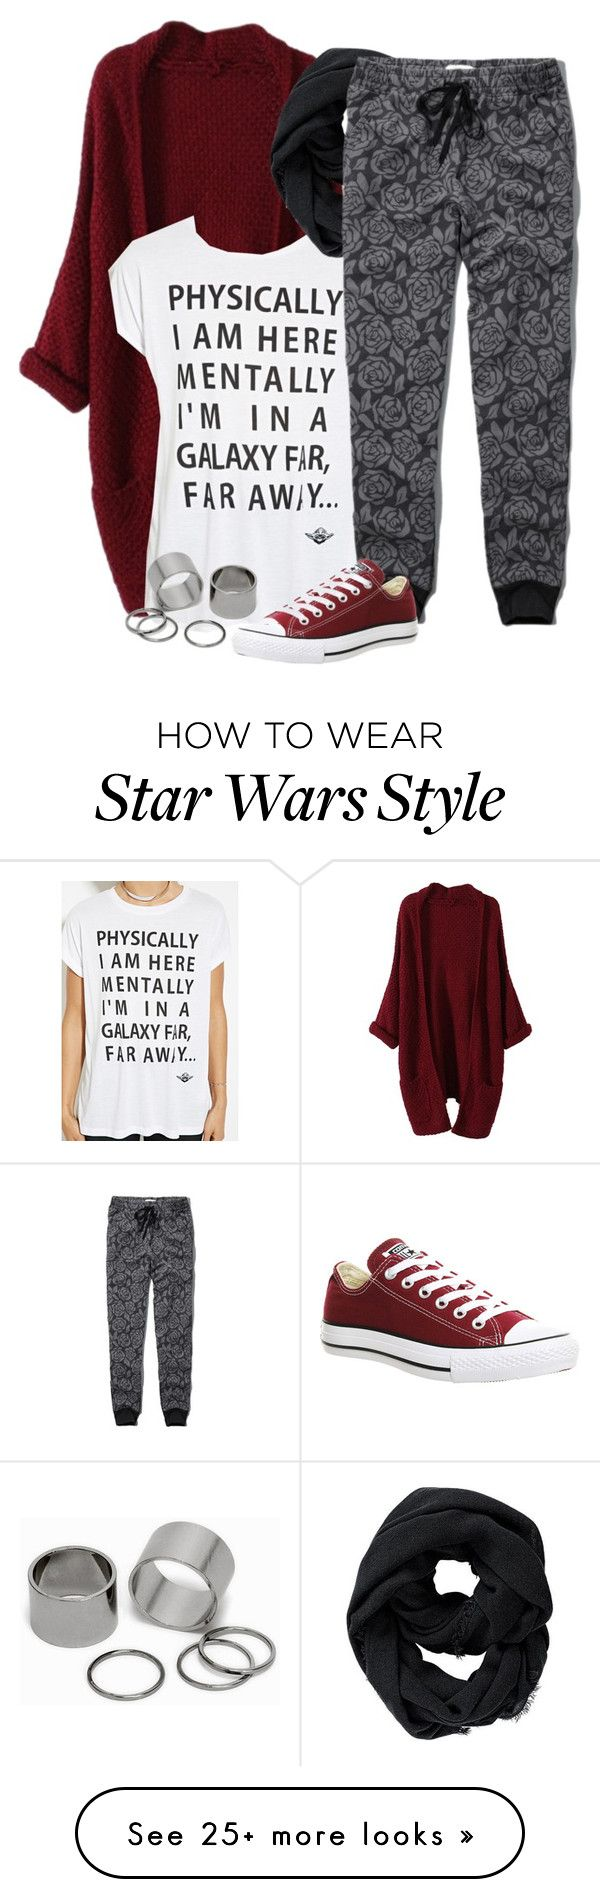 """Mentally I'm in a galaxy far far away."" by birdofparadise25 on Polyvore featuring Forever 21, Athleta, Abercrombie & Fitch, Converse, Pieces, women's clothing, women's fashion, women, female and woman"